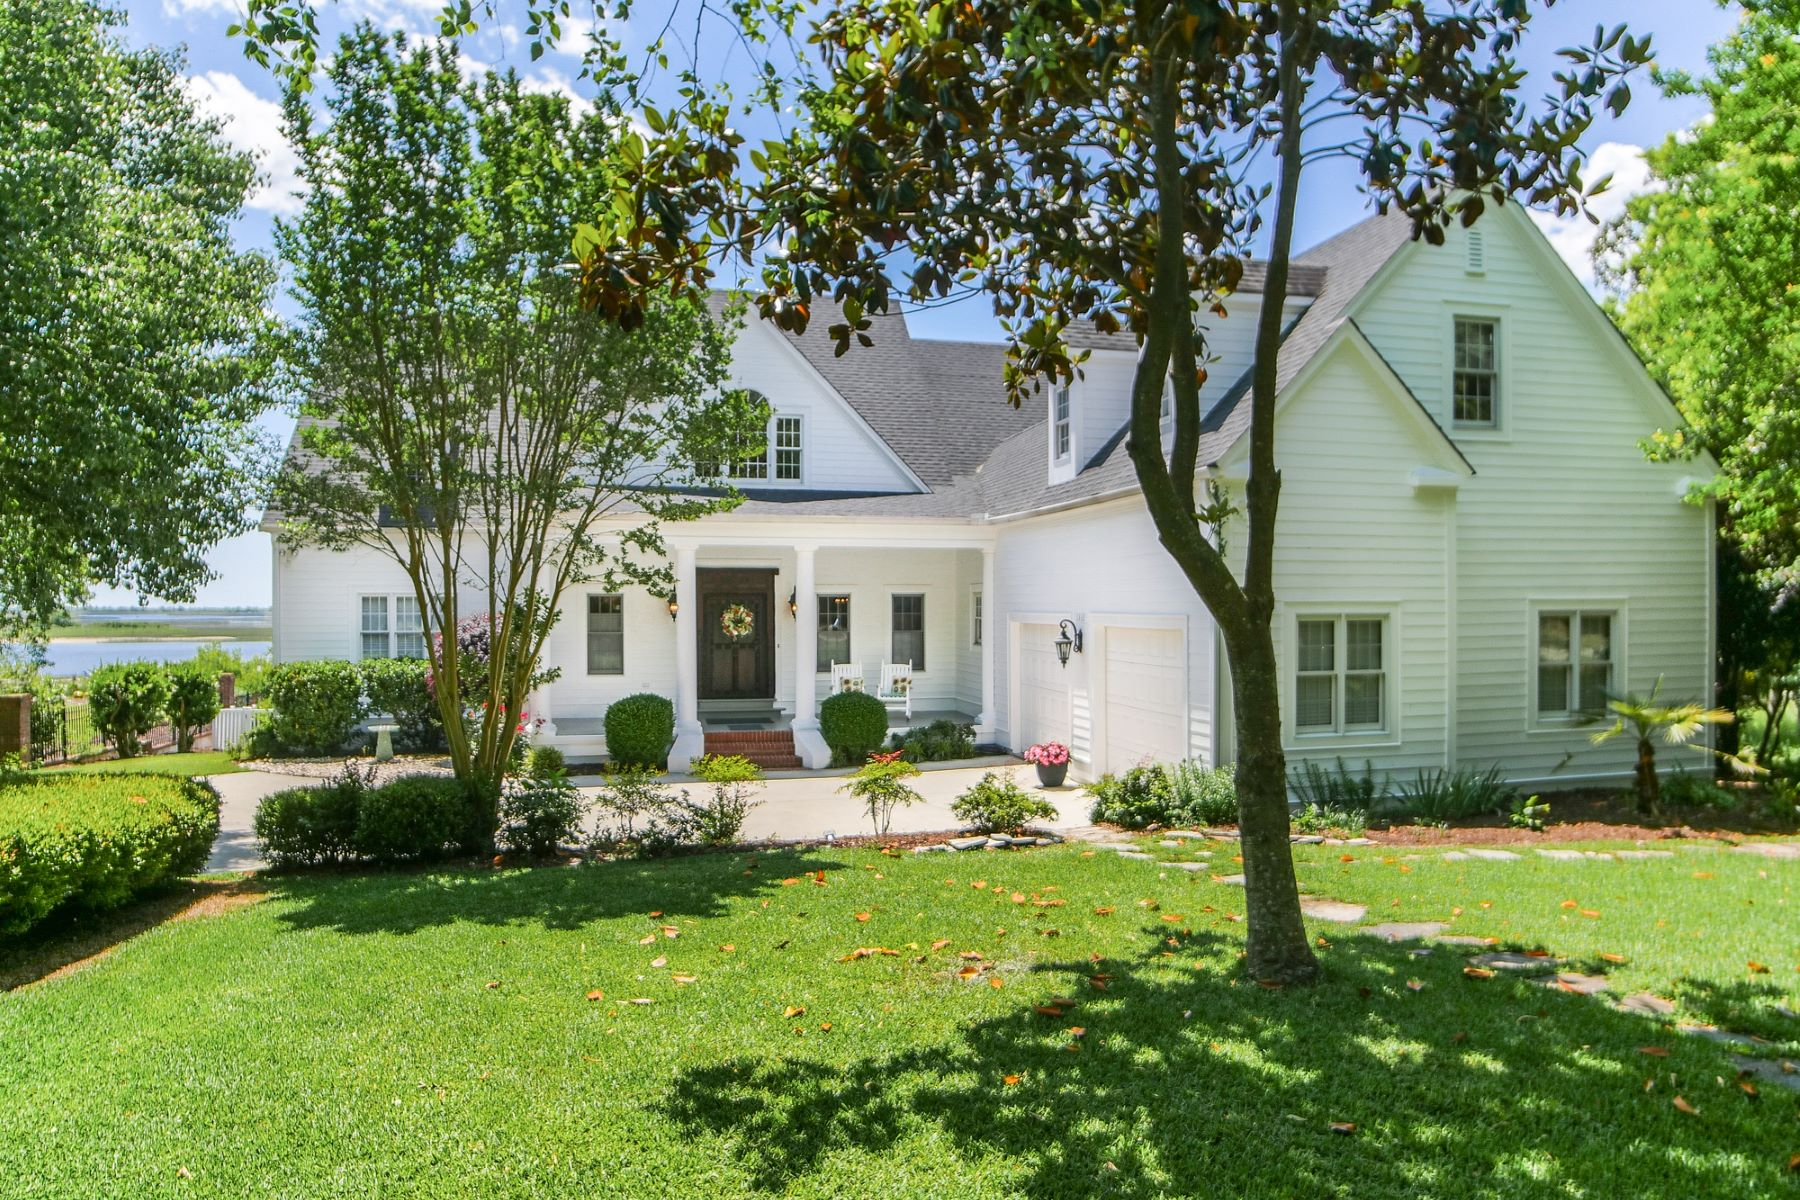 Single Family Home for Active at Architecturally Designed Intracoastal Home 1332 Harbour Watch SW Calabash, North Carolina 28467 United States